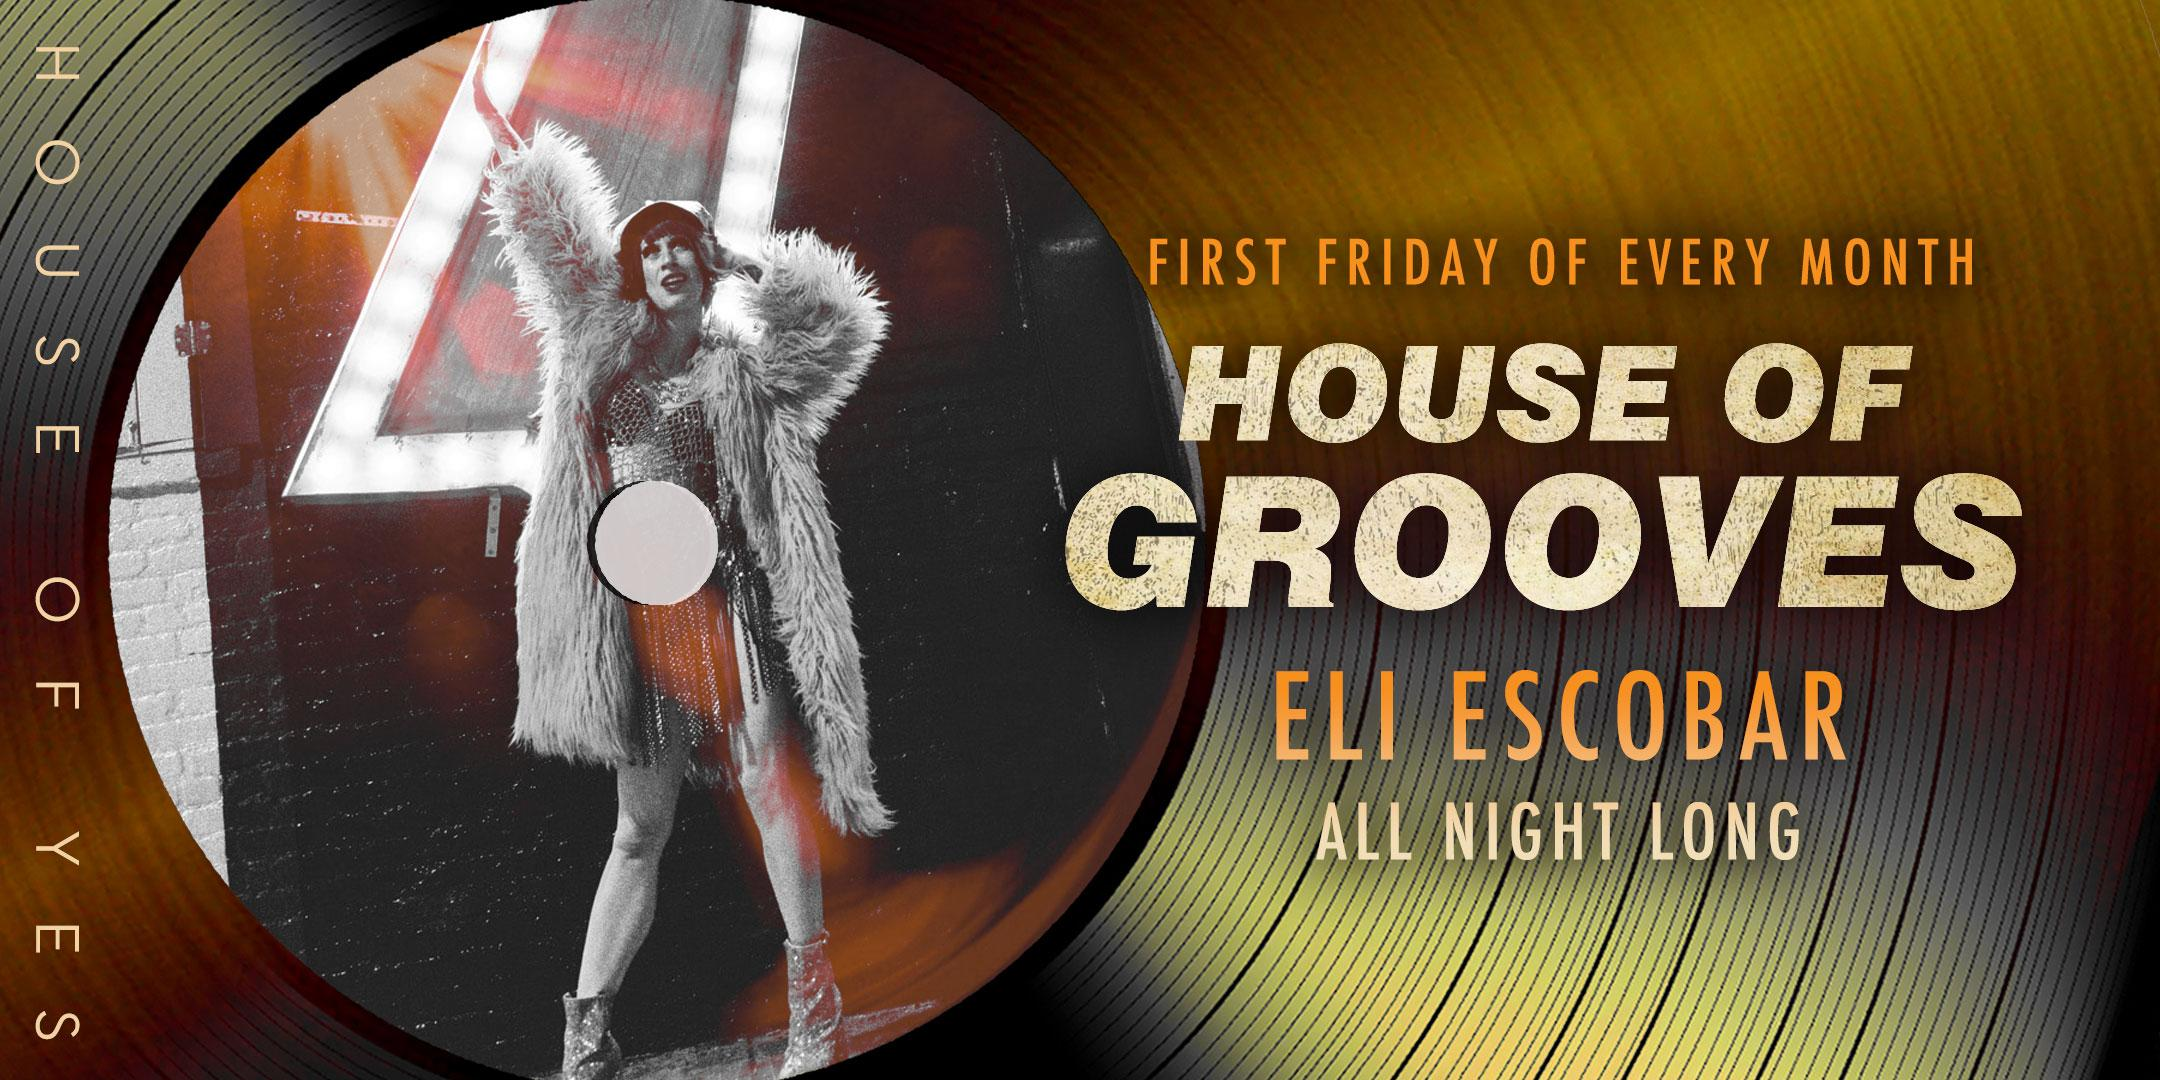 House of Grooves: Eli Escobar All Night Long